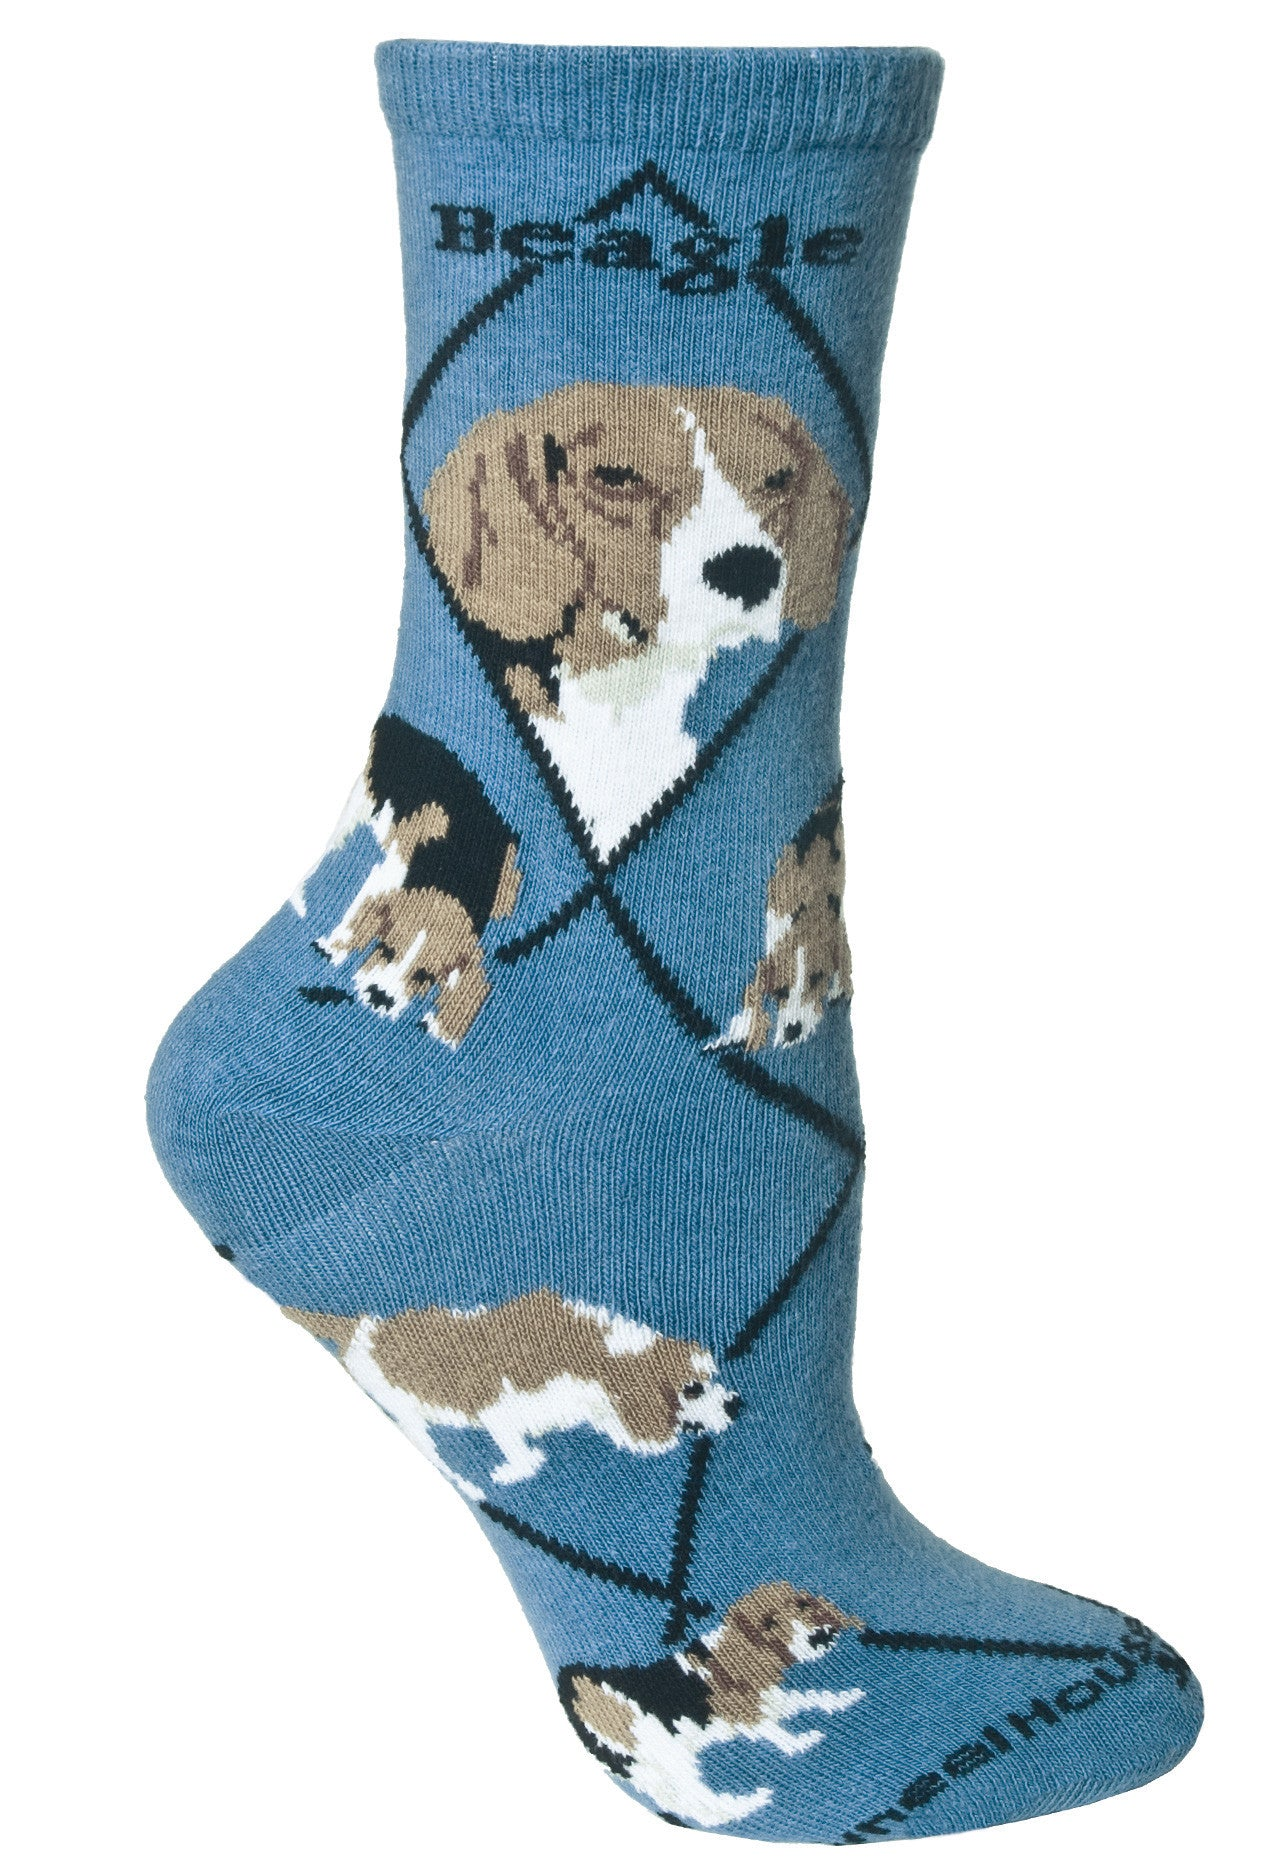 Beagle Crew Socks on Blue